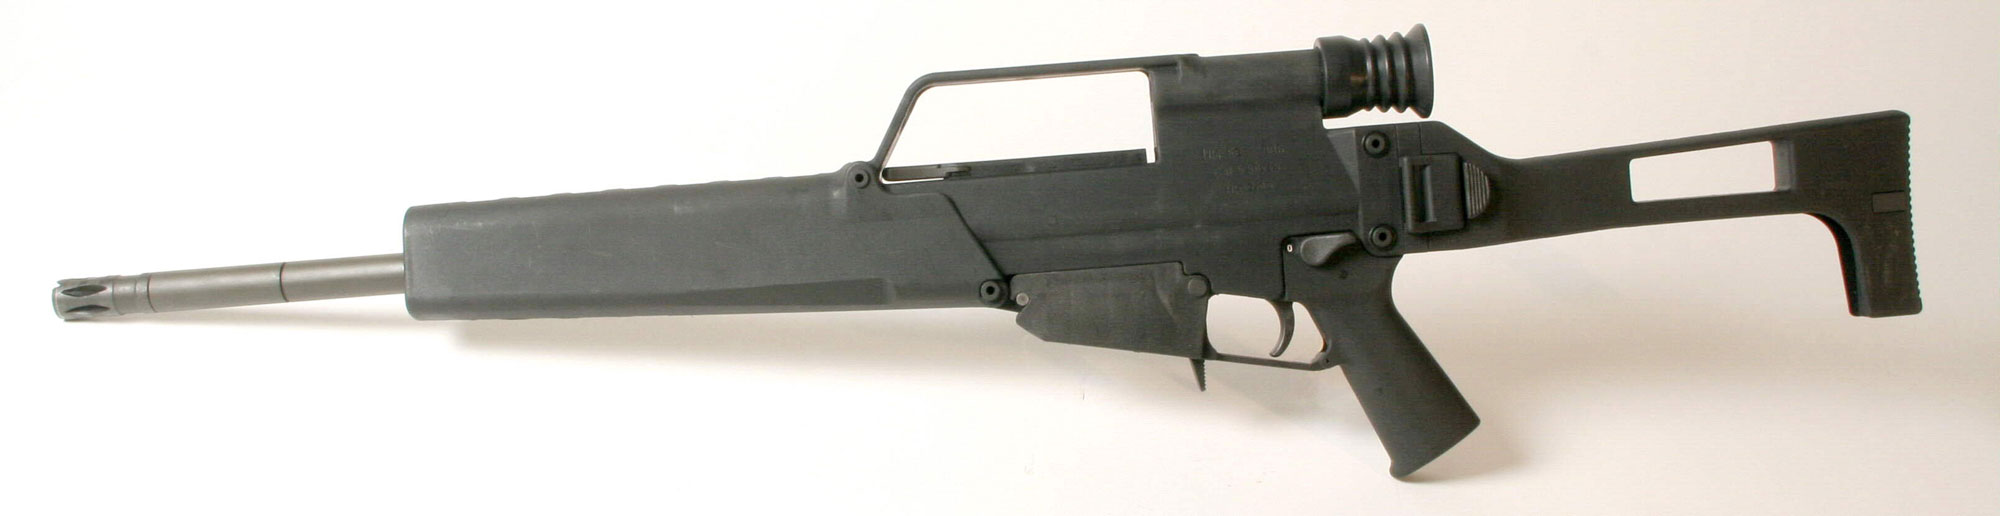 Heckler & Koch 50 prototype